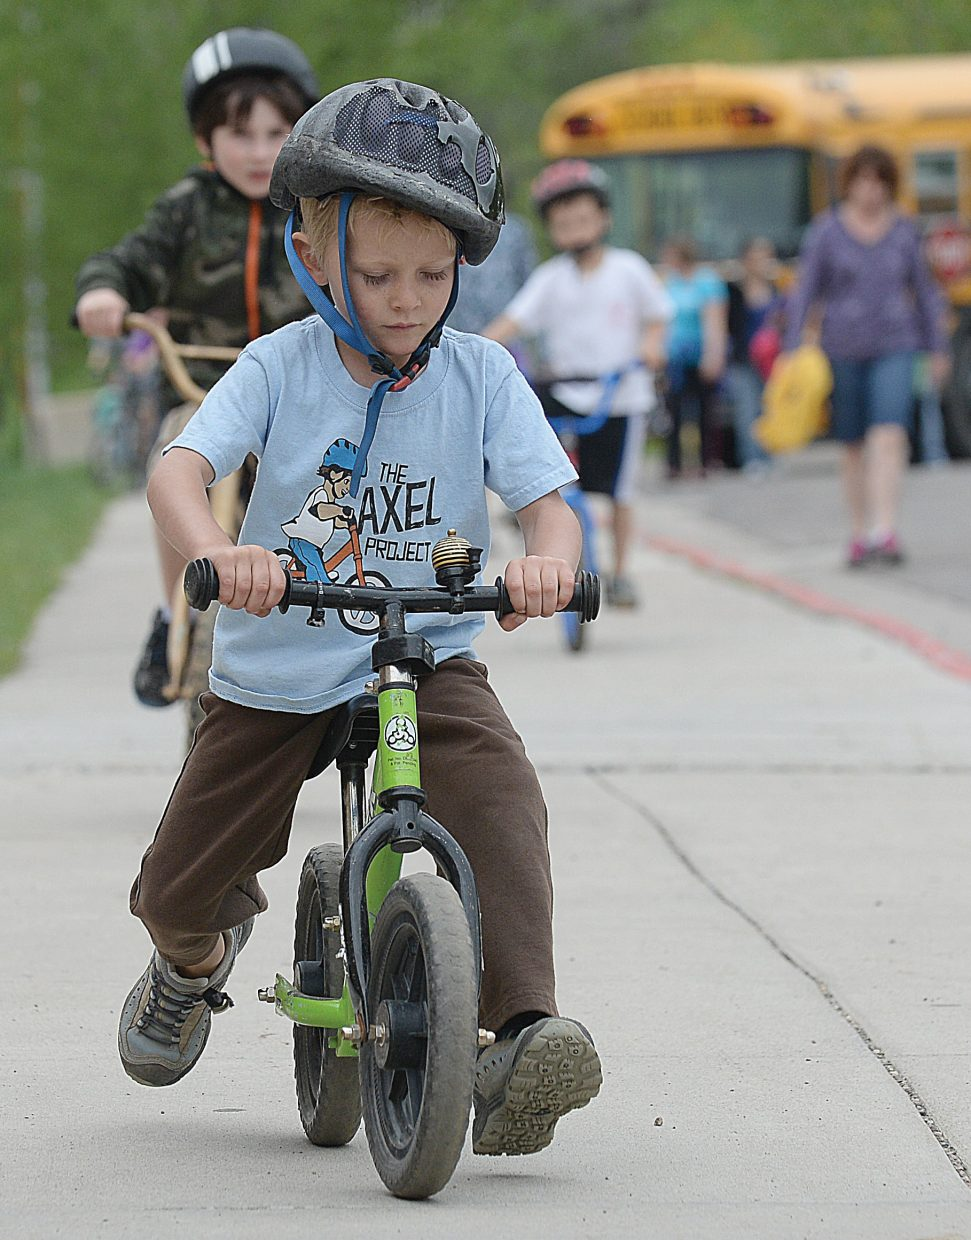 Fergus Kemp rides his strider during the Strawberry Park Elementary School Bike Rally on Friday morning. Young Fergus wasn't quite old enough to go to class yet but was at the rally along with his brother Mason, who is a kindergartner.